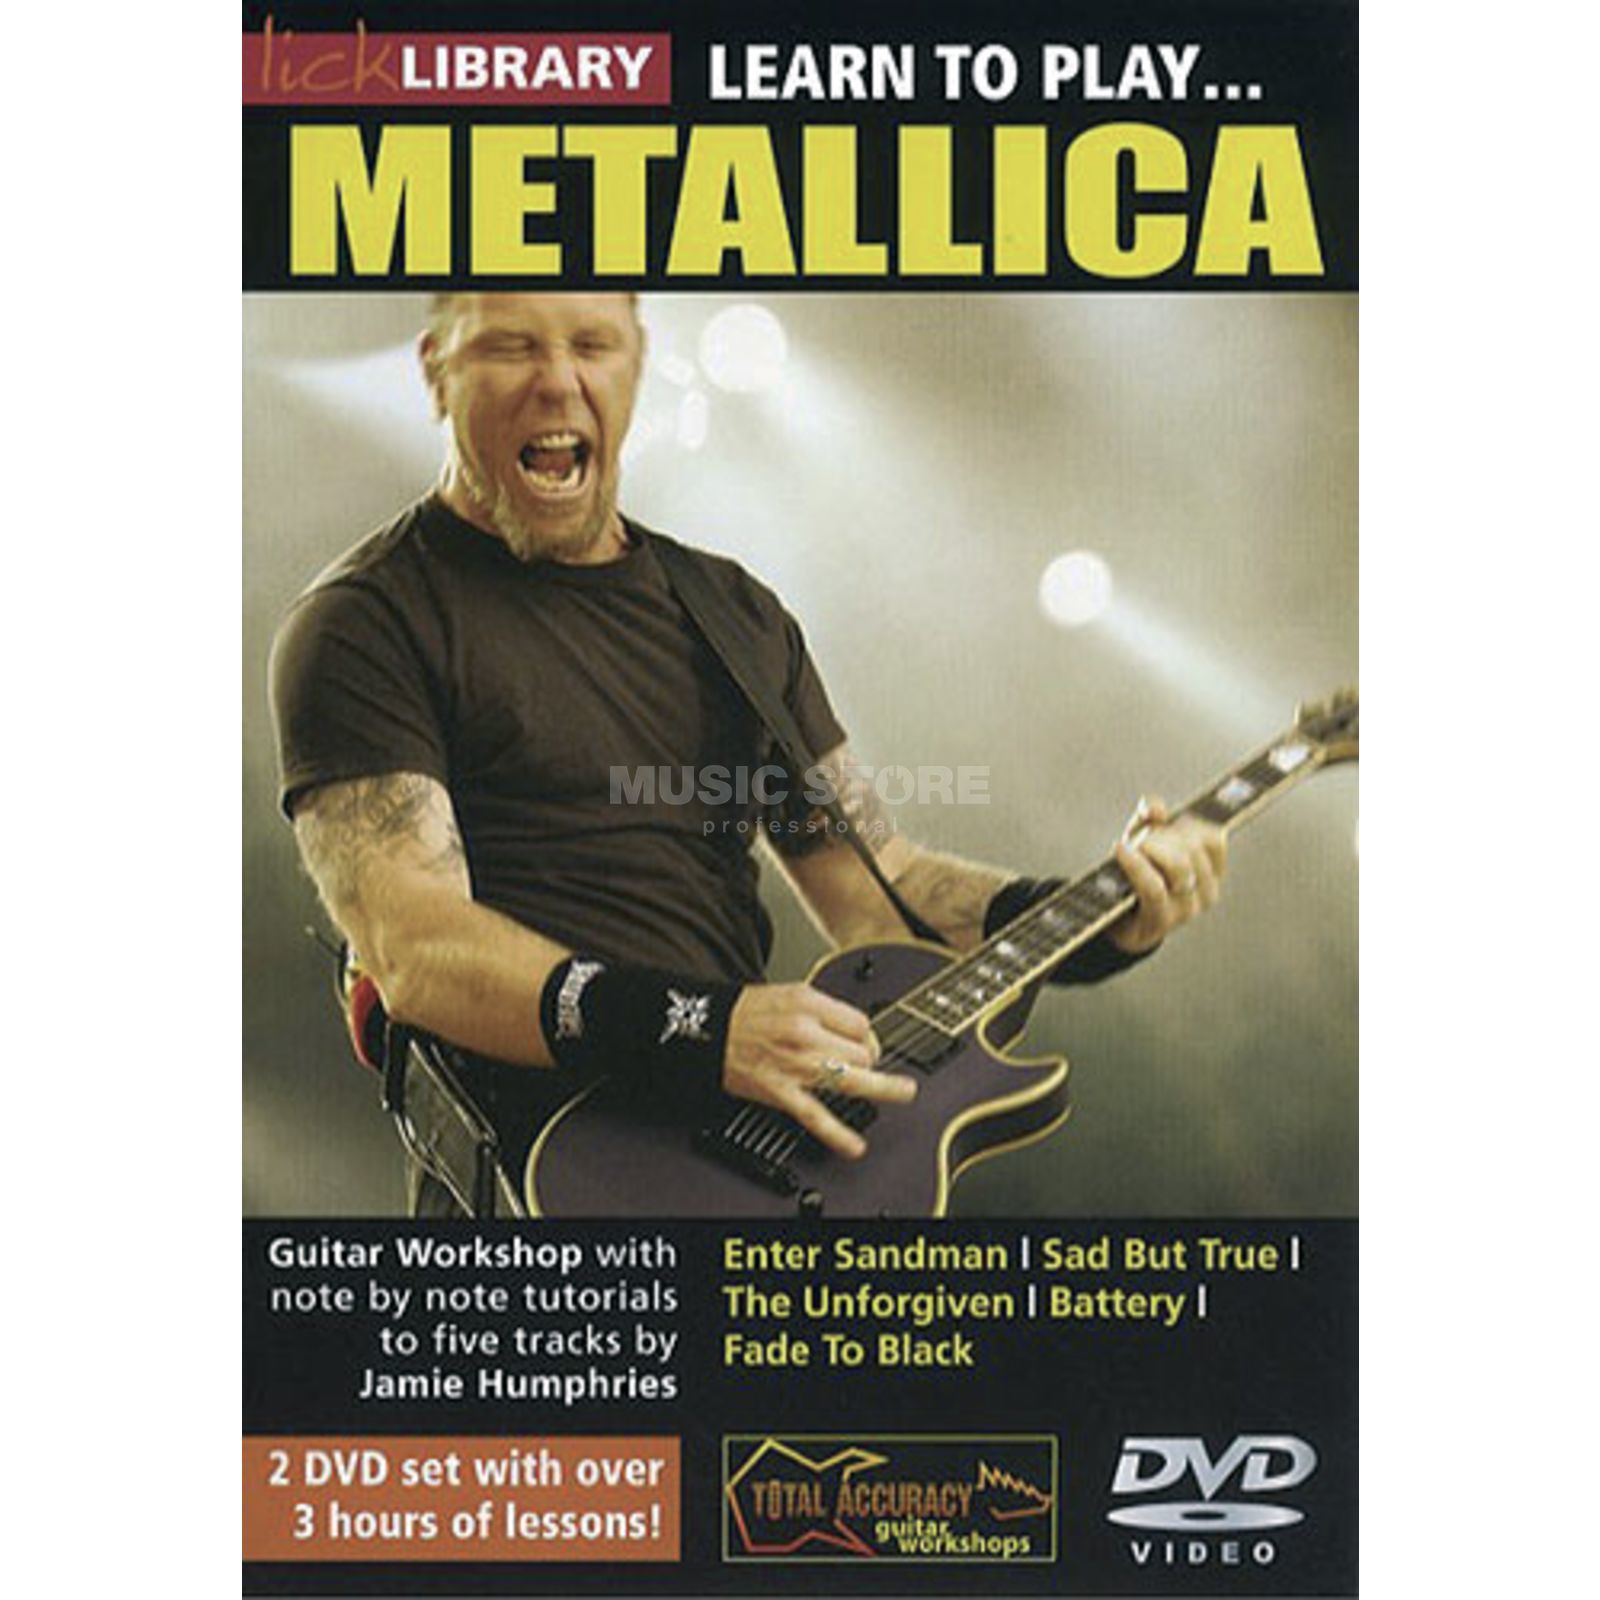 Roadrock International Lick Library: Learn To Play Metallica DVD Produktbild